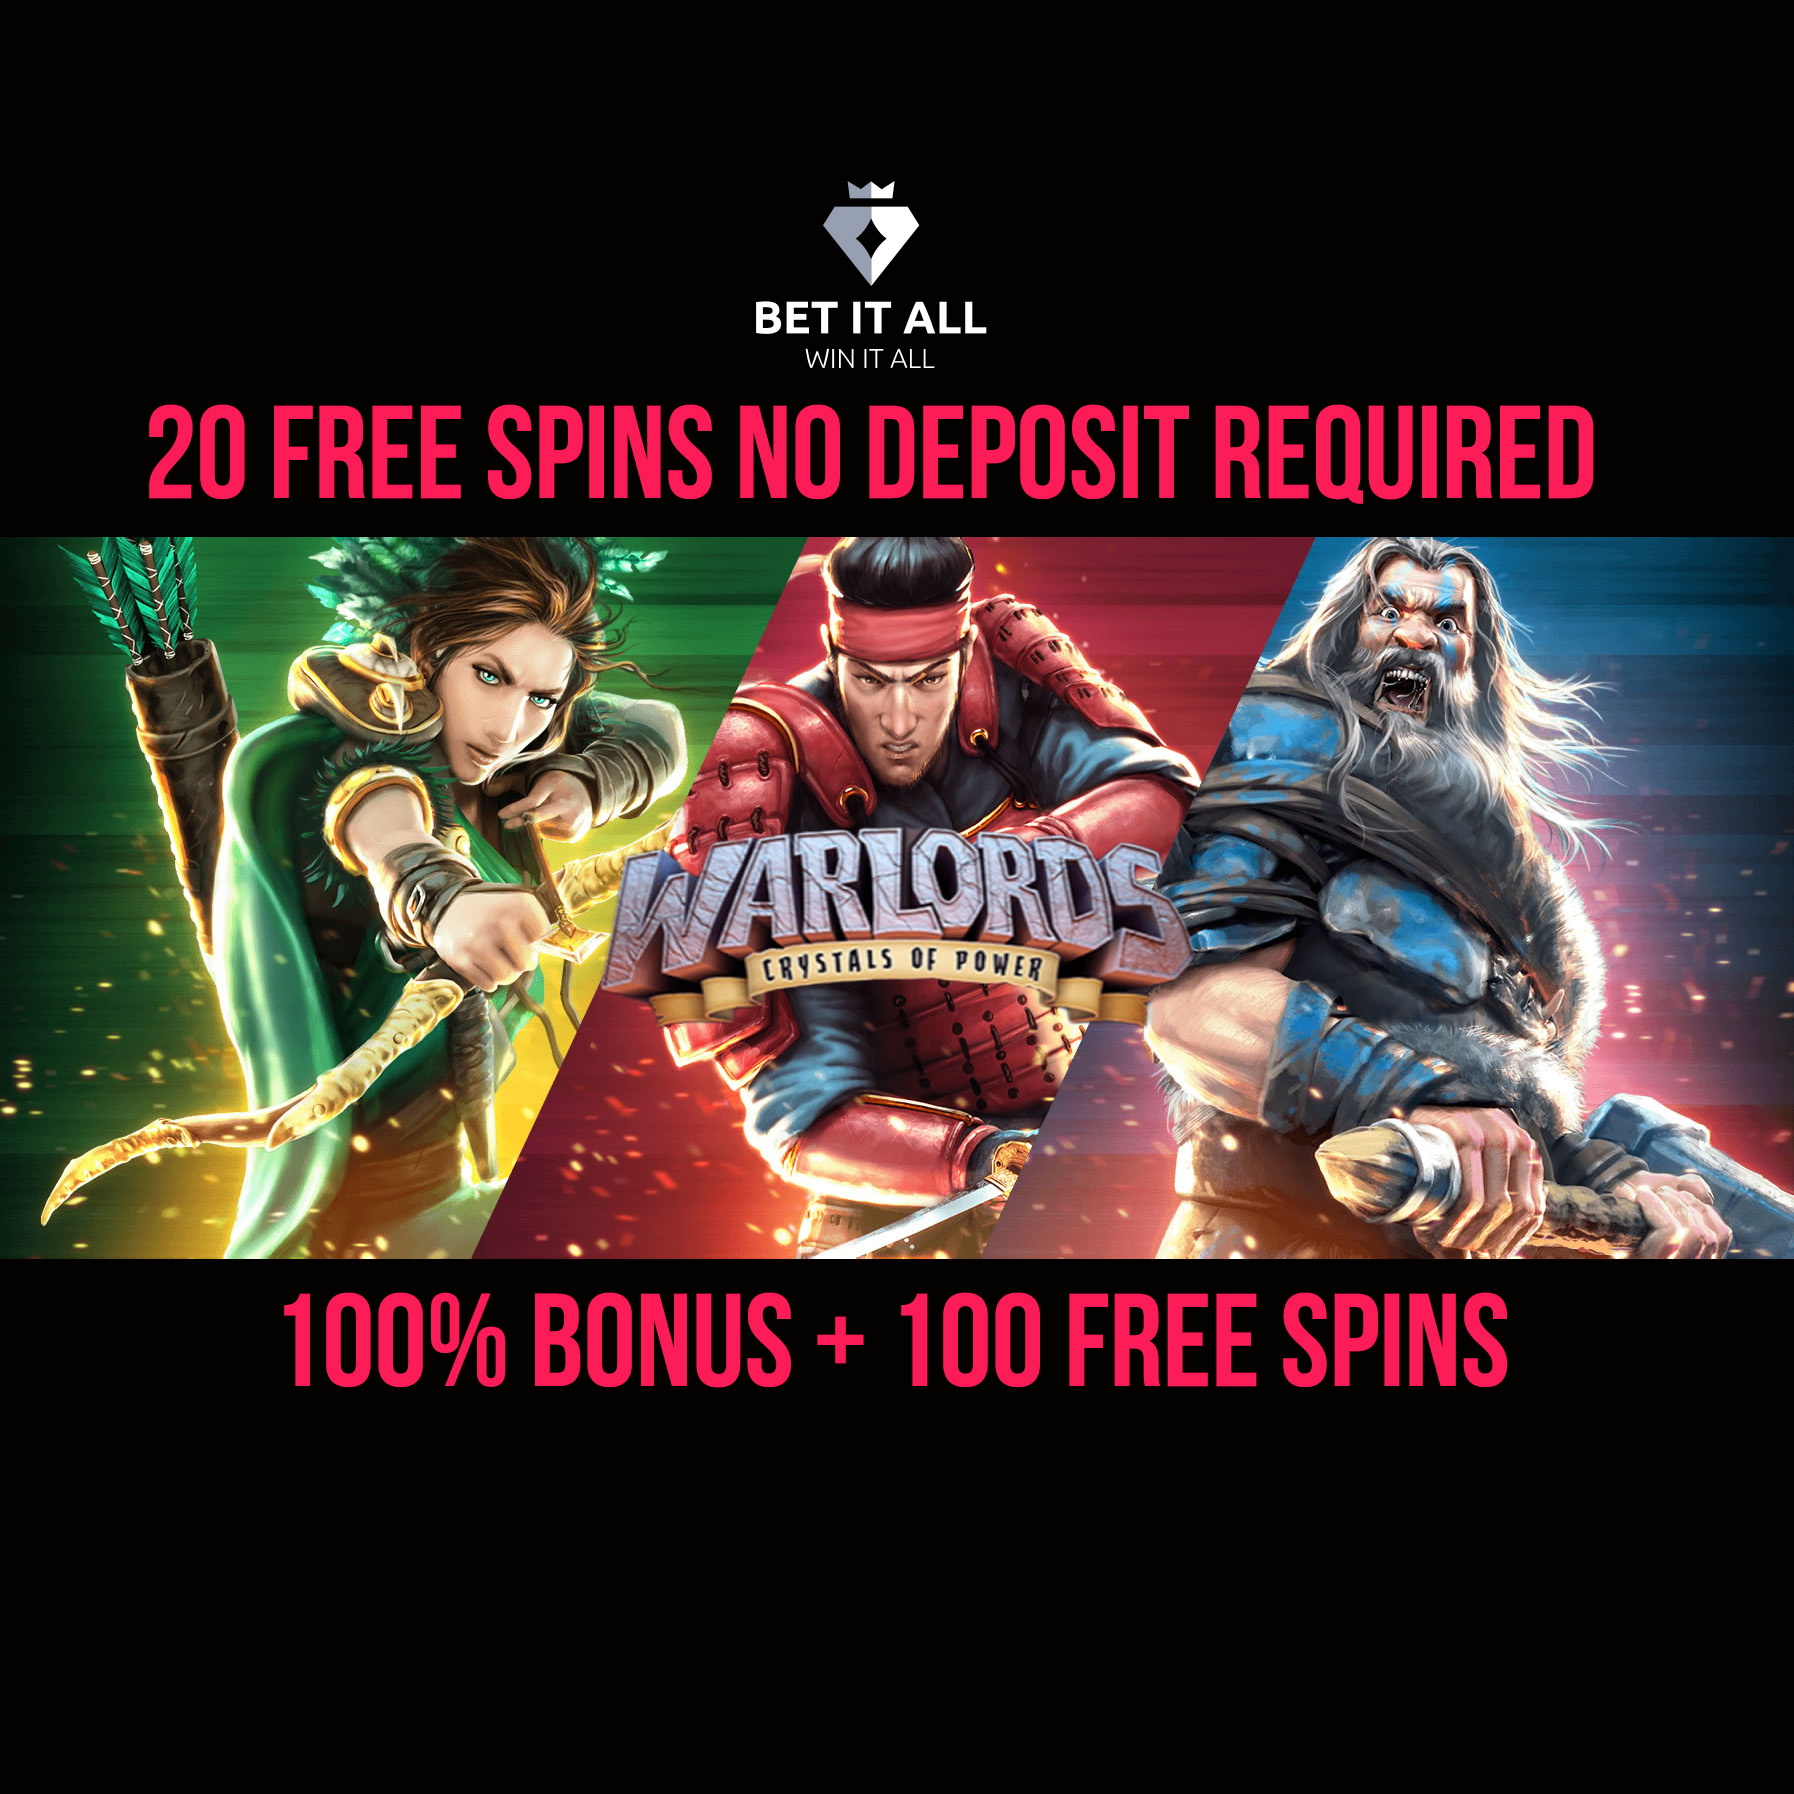 Best Free Spins No Deposit Bonuses for